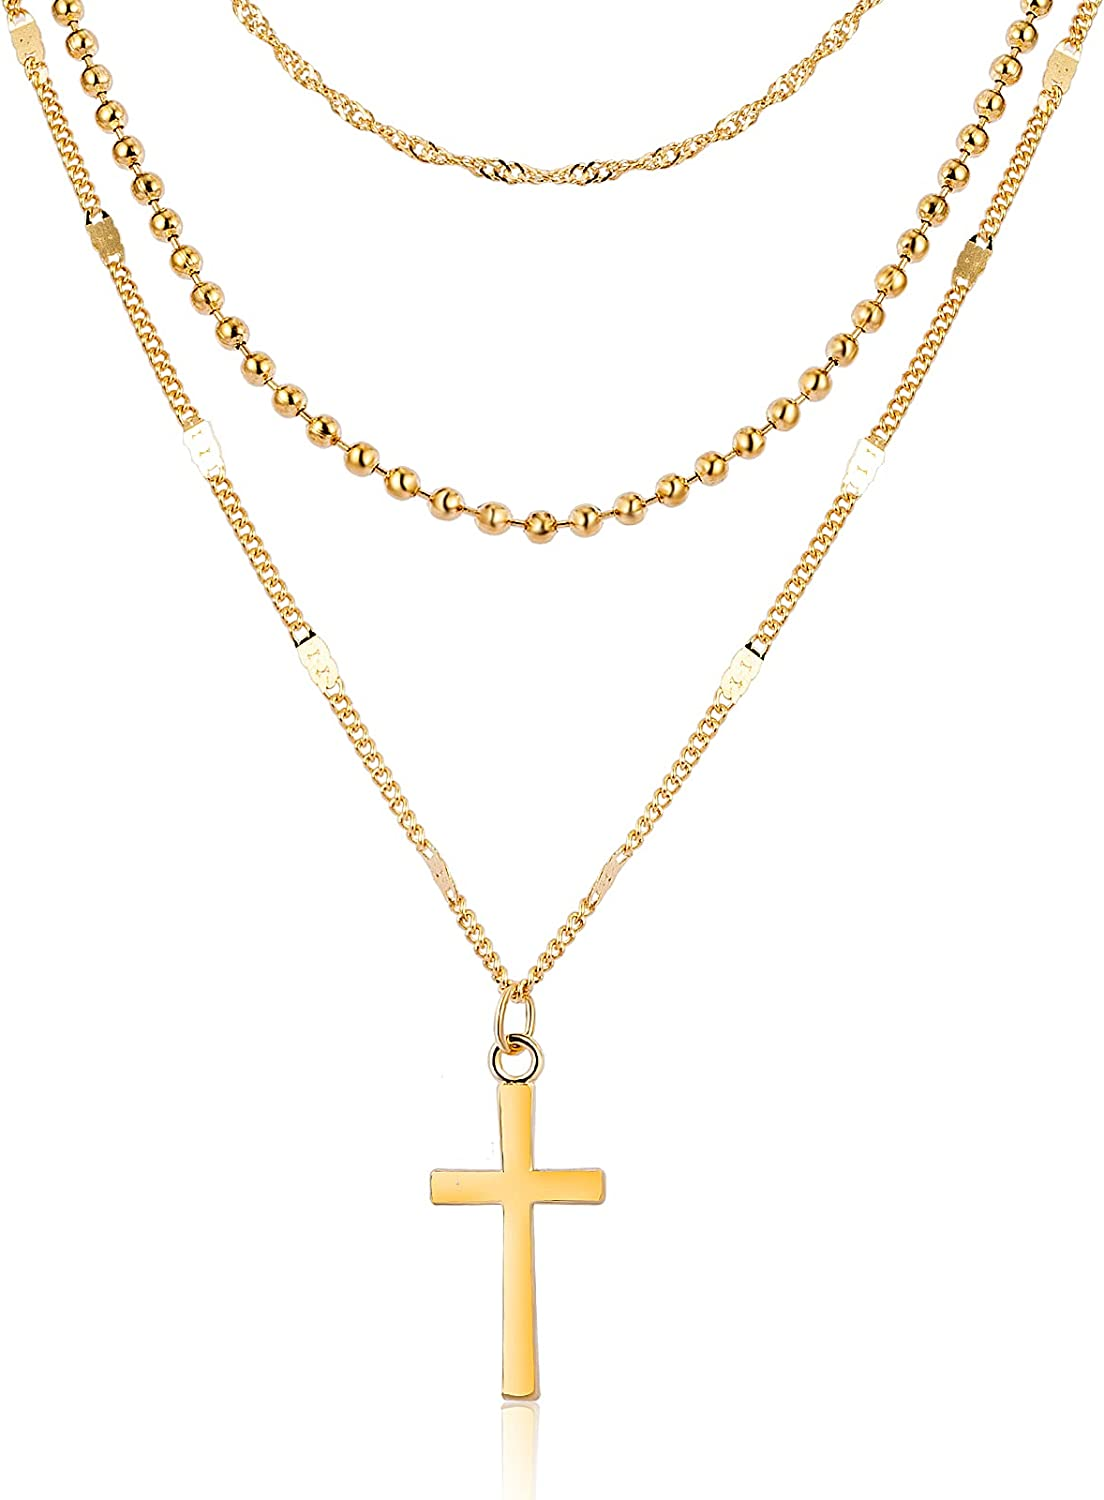 CHANBO Choker Necklaces for Women Girls, Dainty 14K Gold Layered Necklaces Pendant Cross Collar Necklace Small Short Necklaces for Women Girls